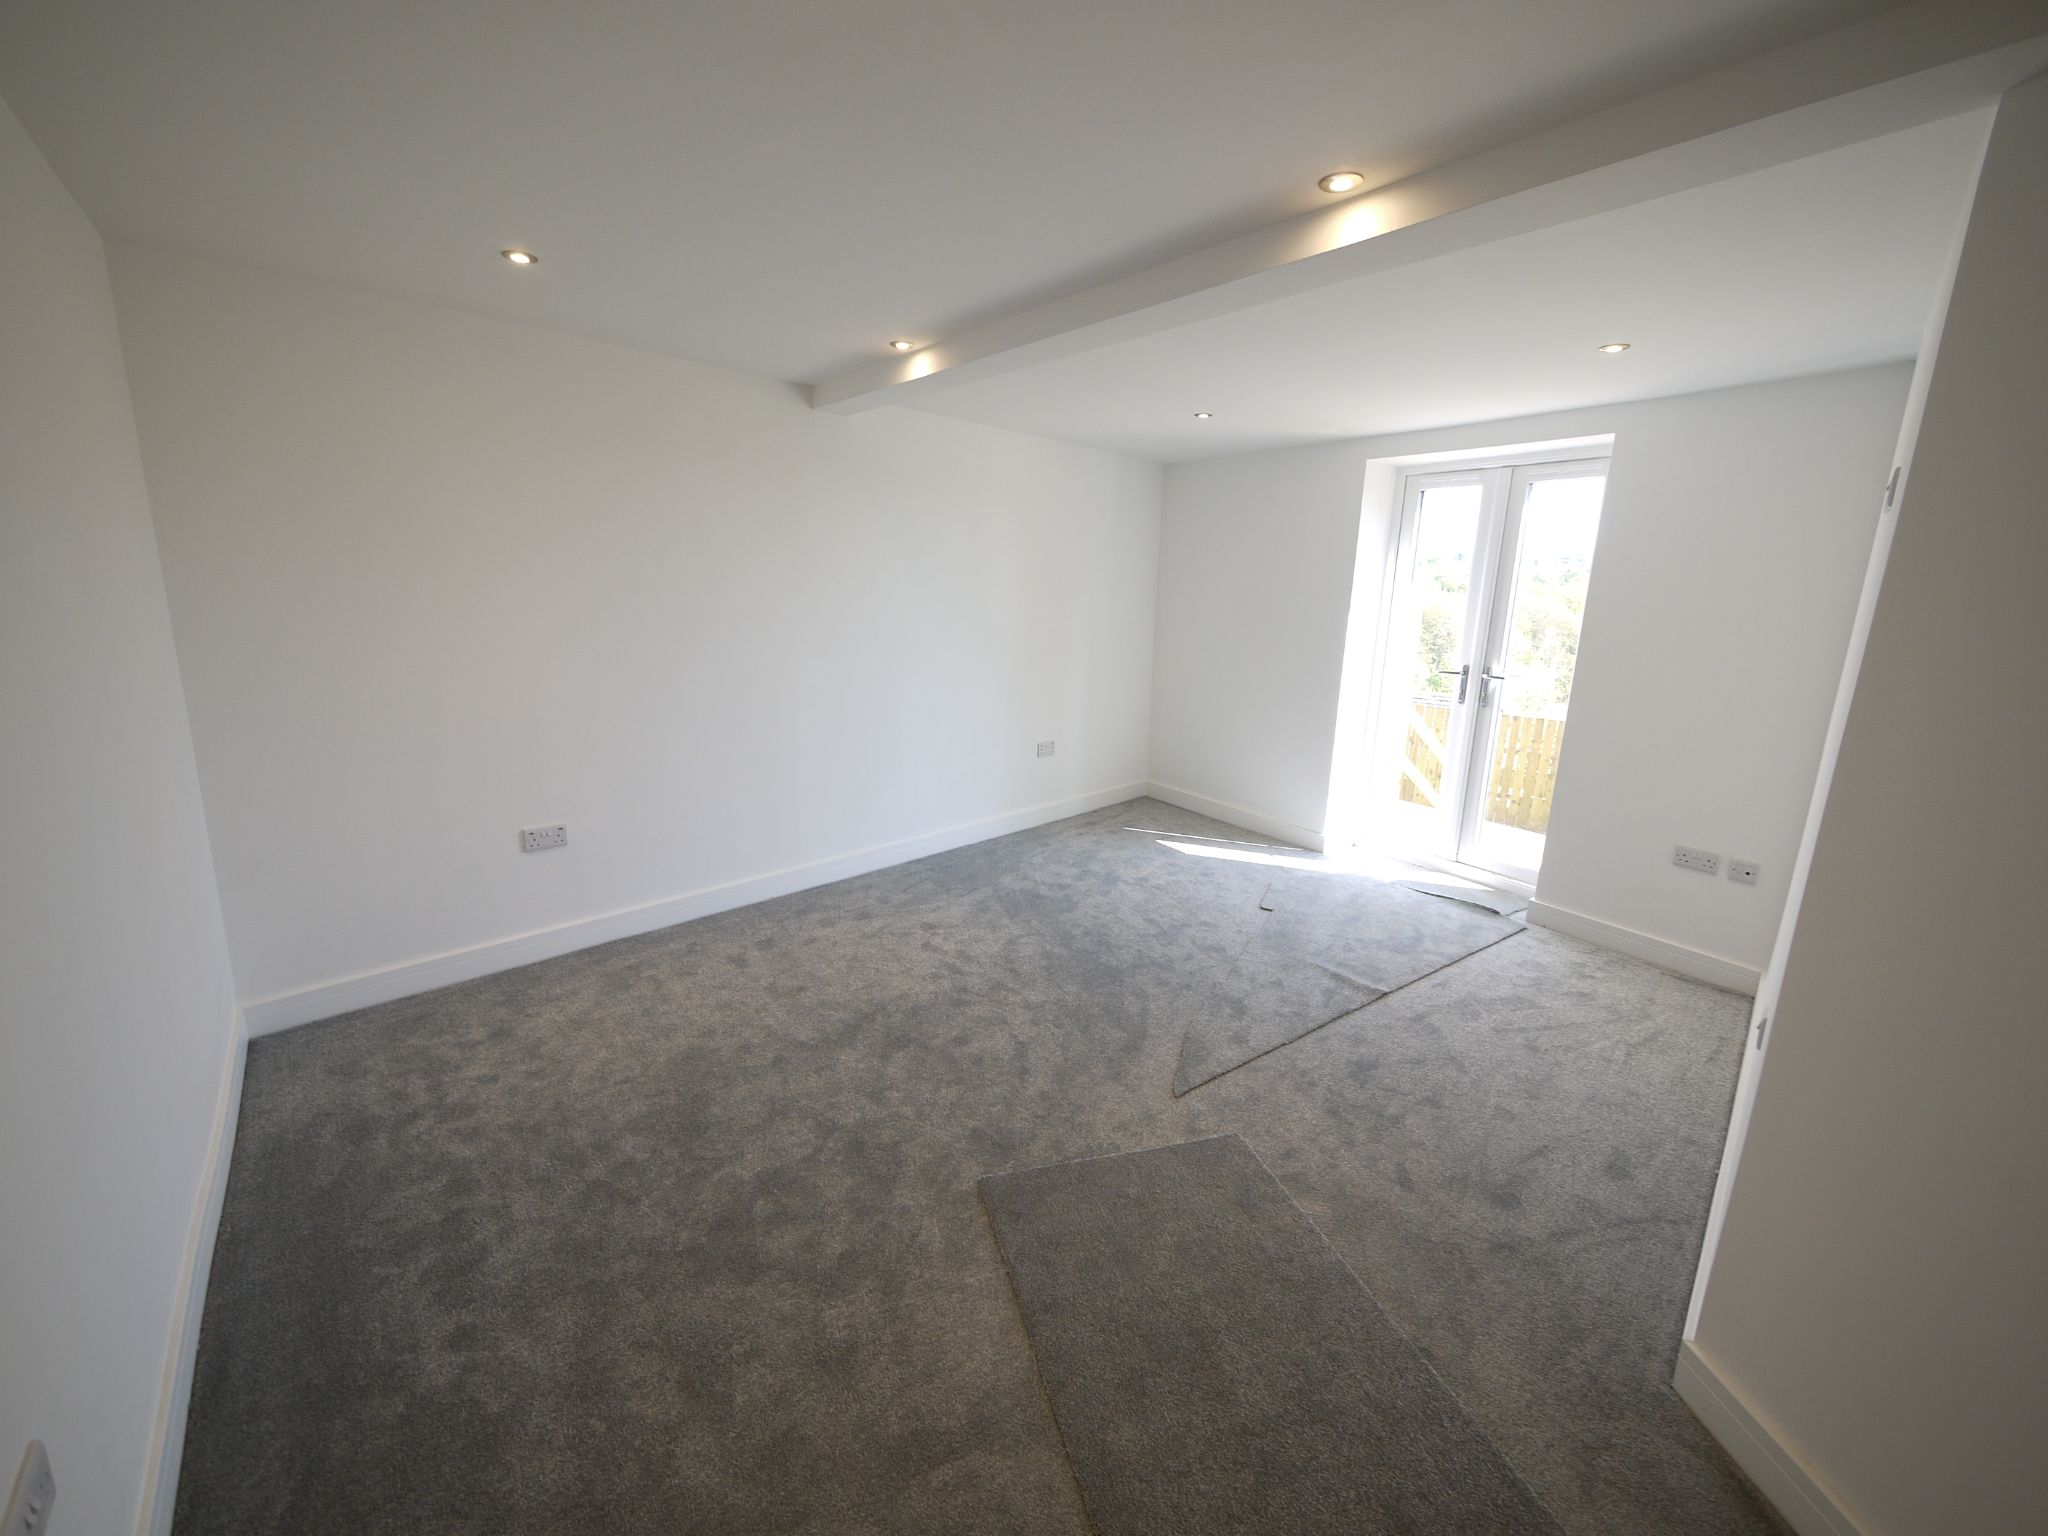 3 bedroom detached house For Sale in Brighouse - Master Bedroom.